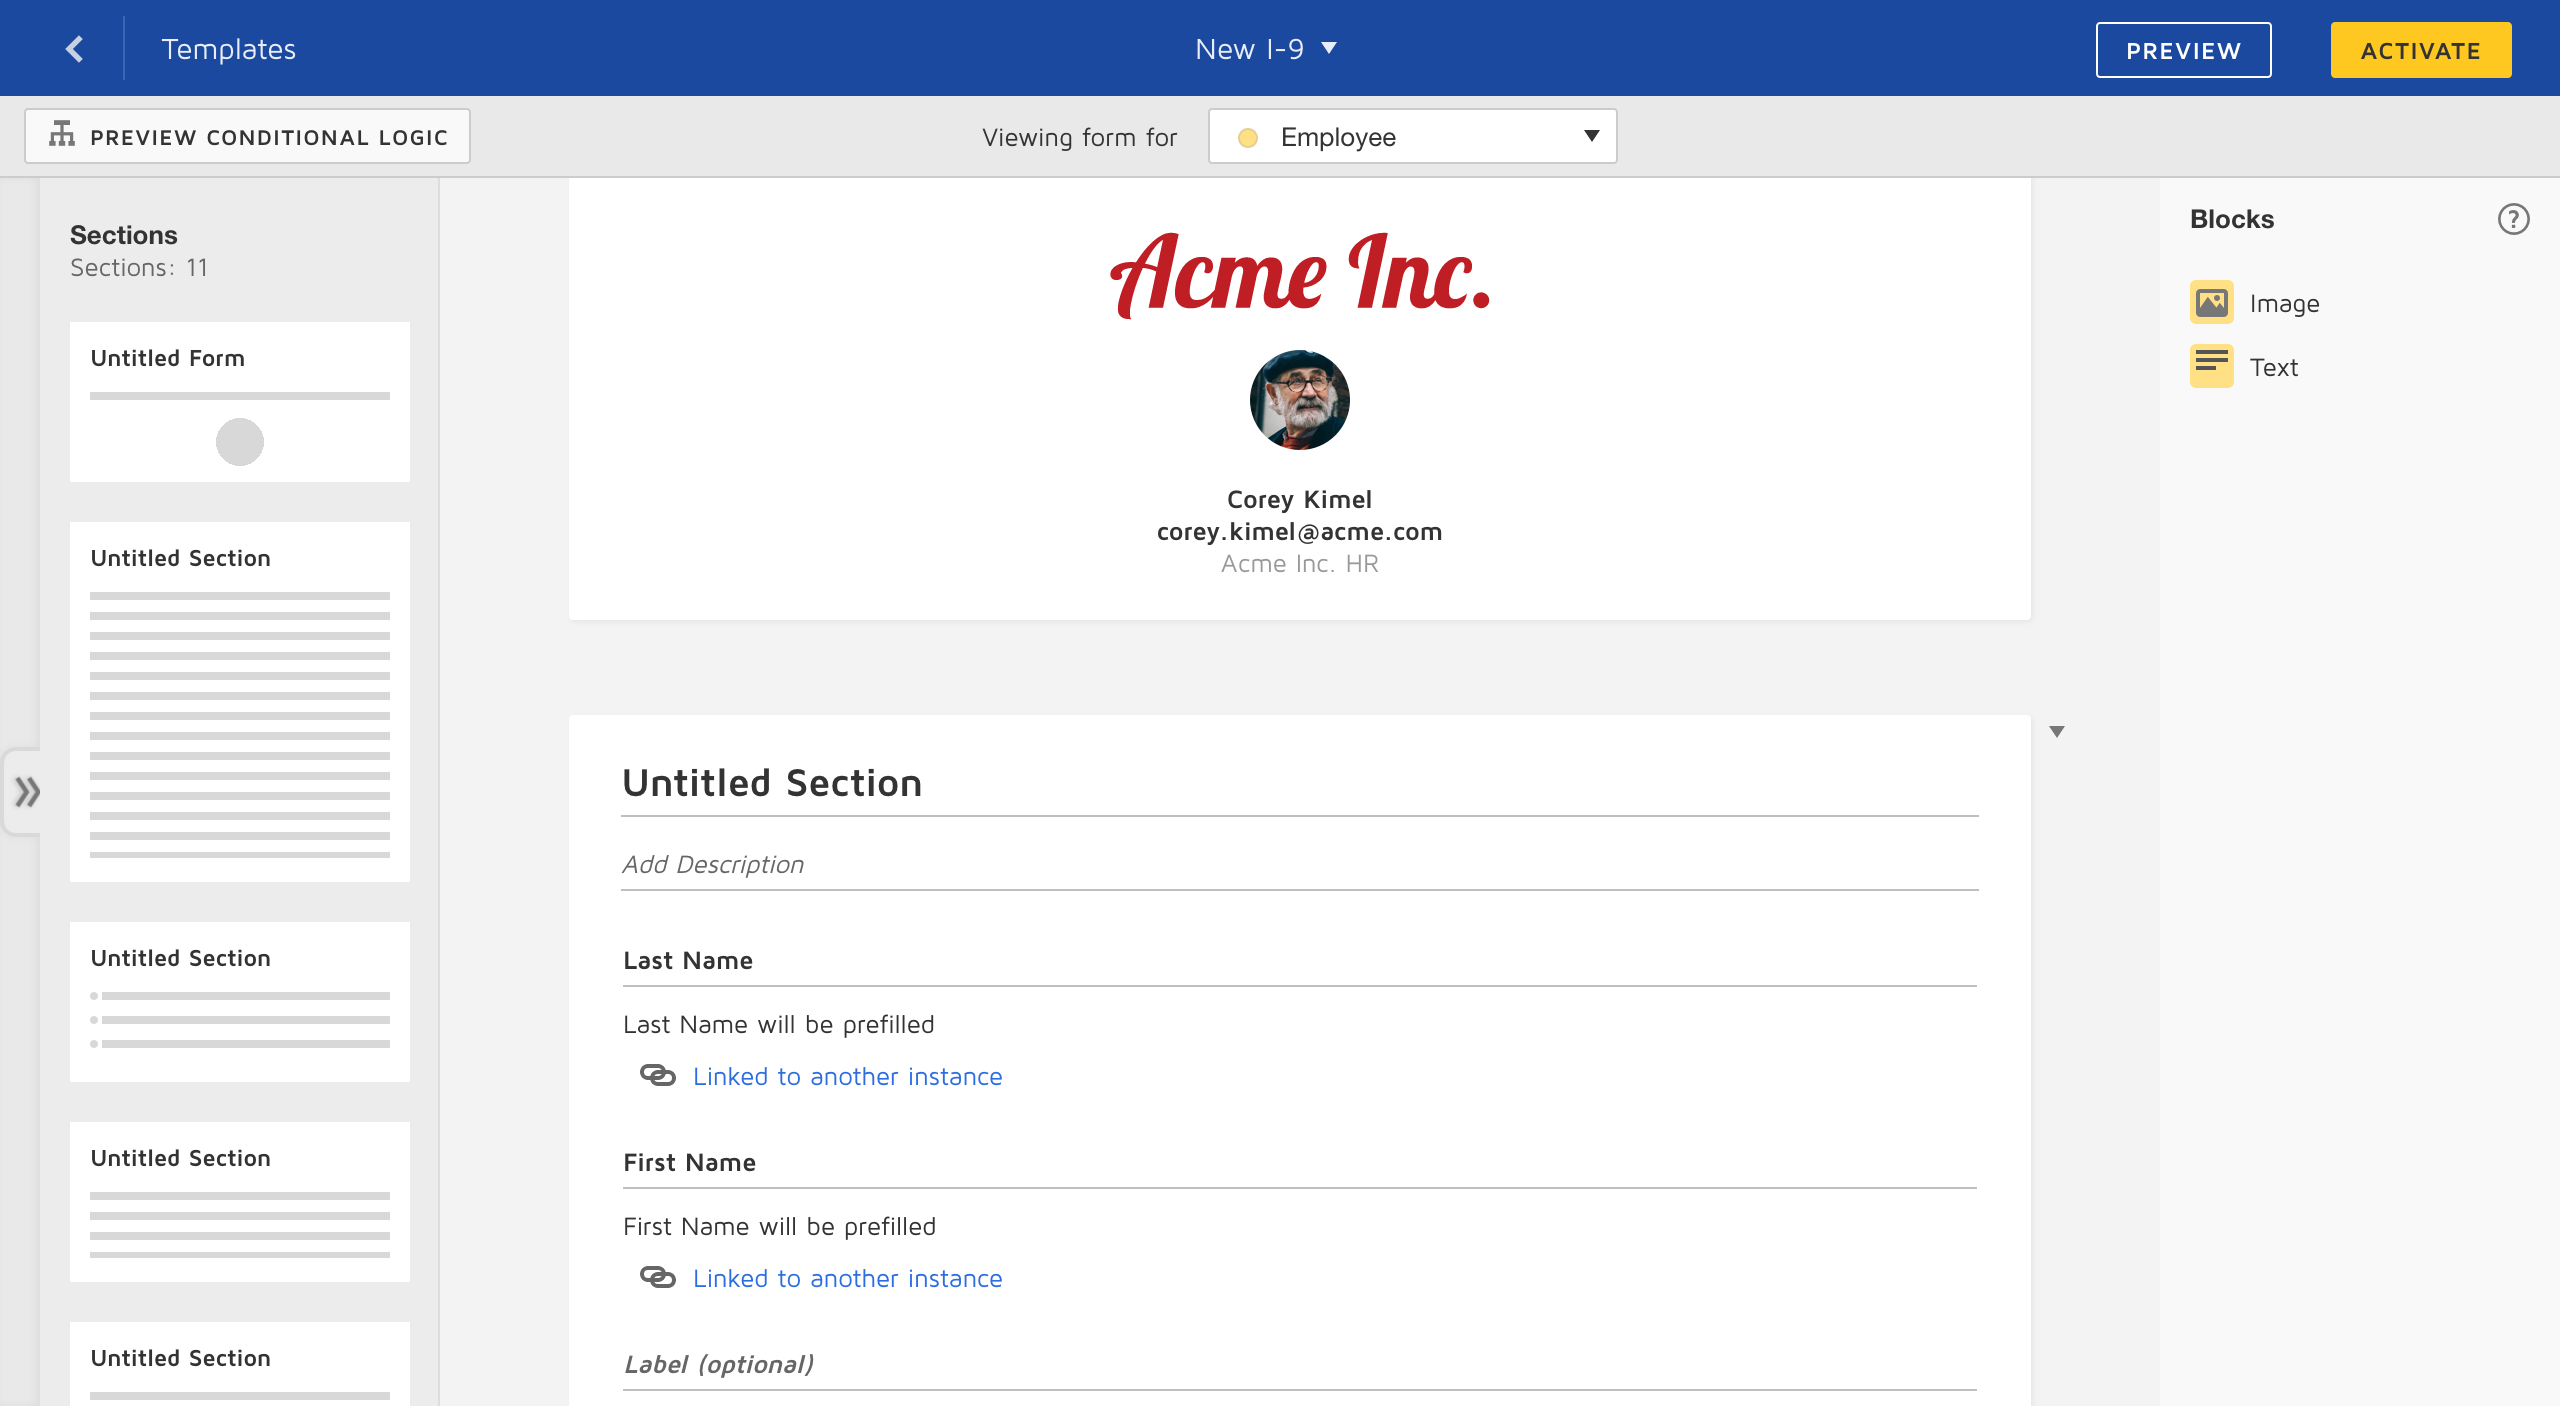 DocuSign: Forms